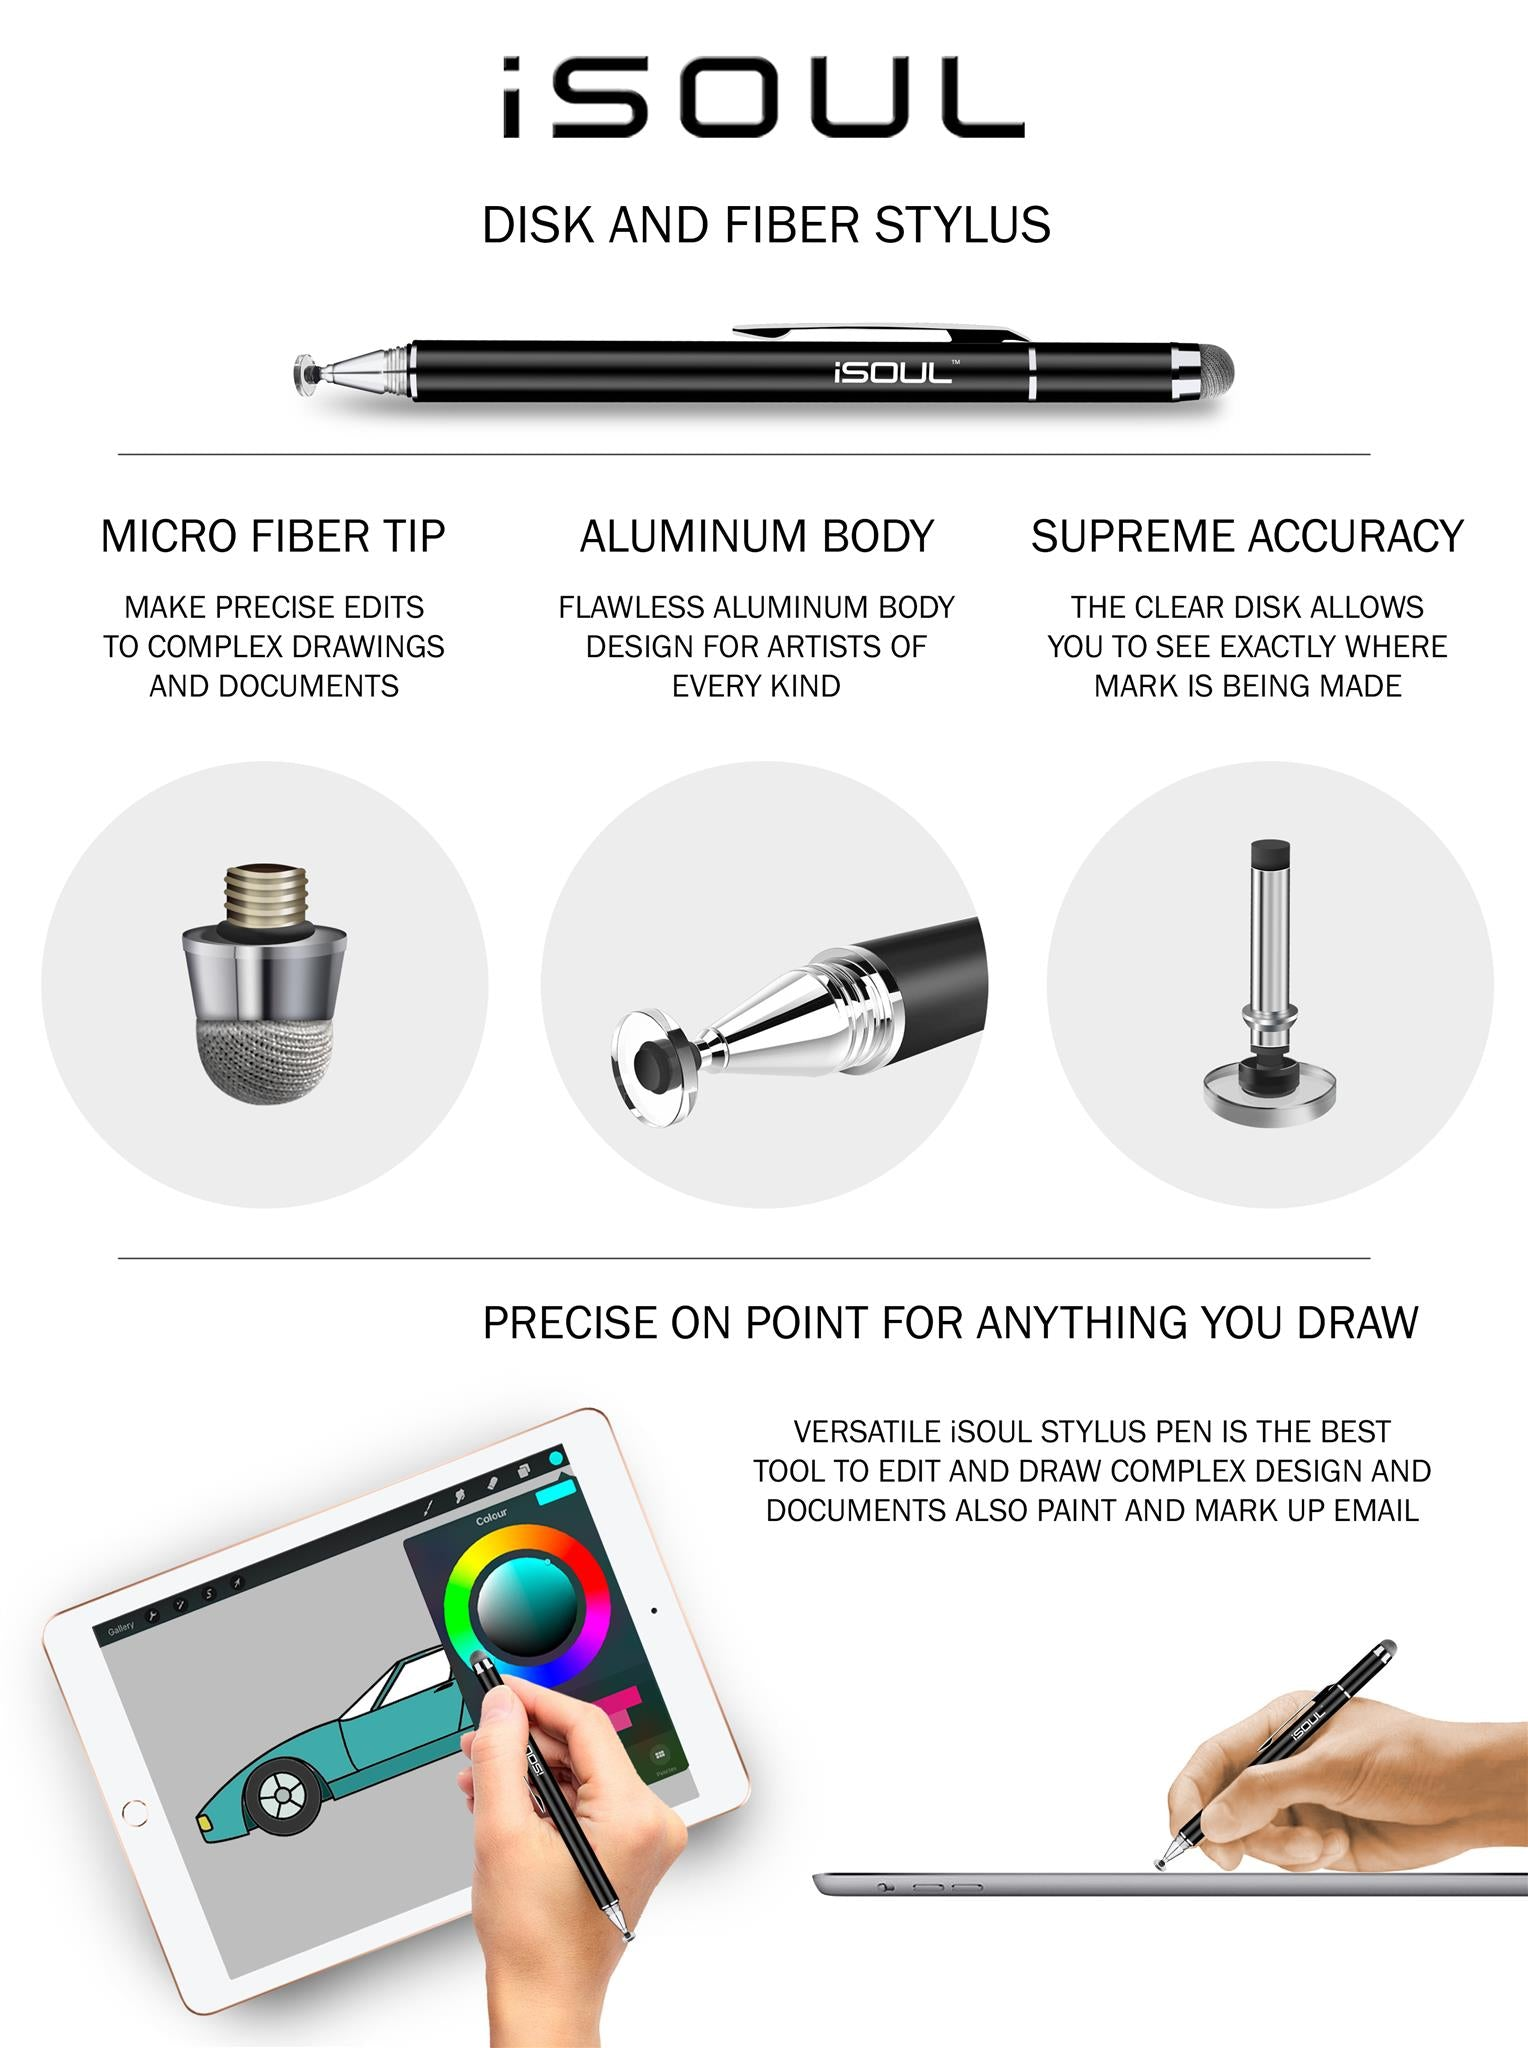 Fin Tip Stylus Pen, Universal Capacitive Precise Disc Styli 2-in-1 Touch Screen Pens with 2Pcs Replacement Tips for Smartphones, iPhone, iPad Mini, Pro, Galaxy, Note, Tab, Tablet, Nexus, Nokia, Blackberry